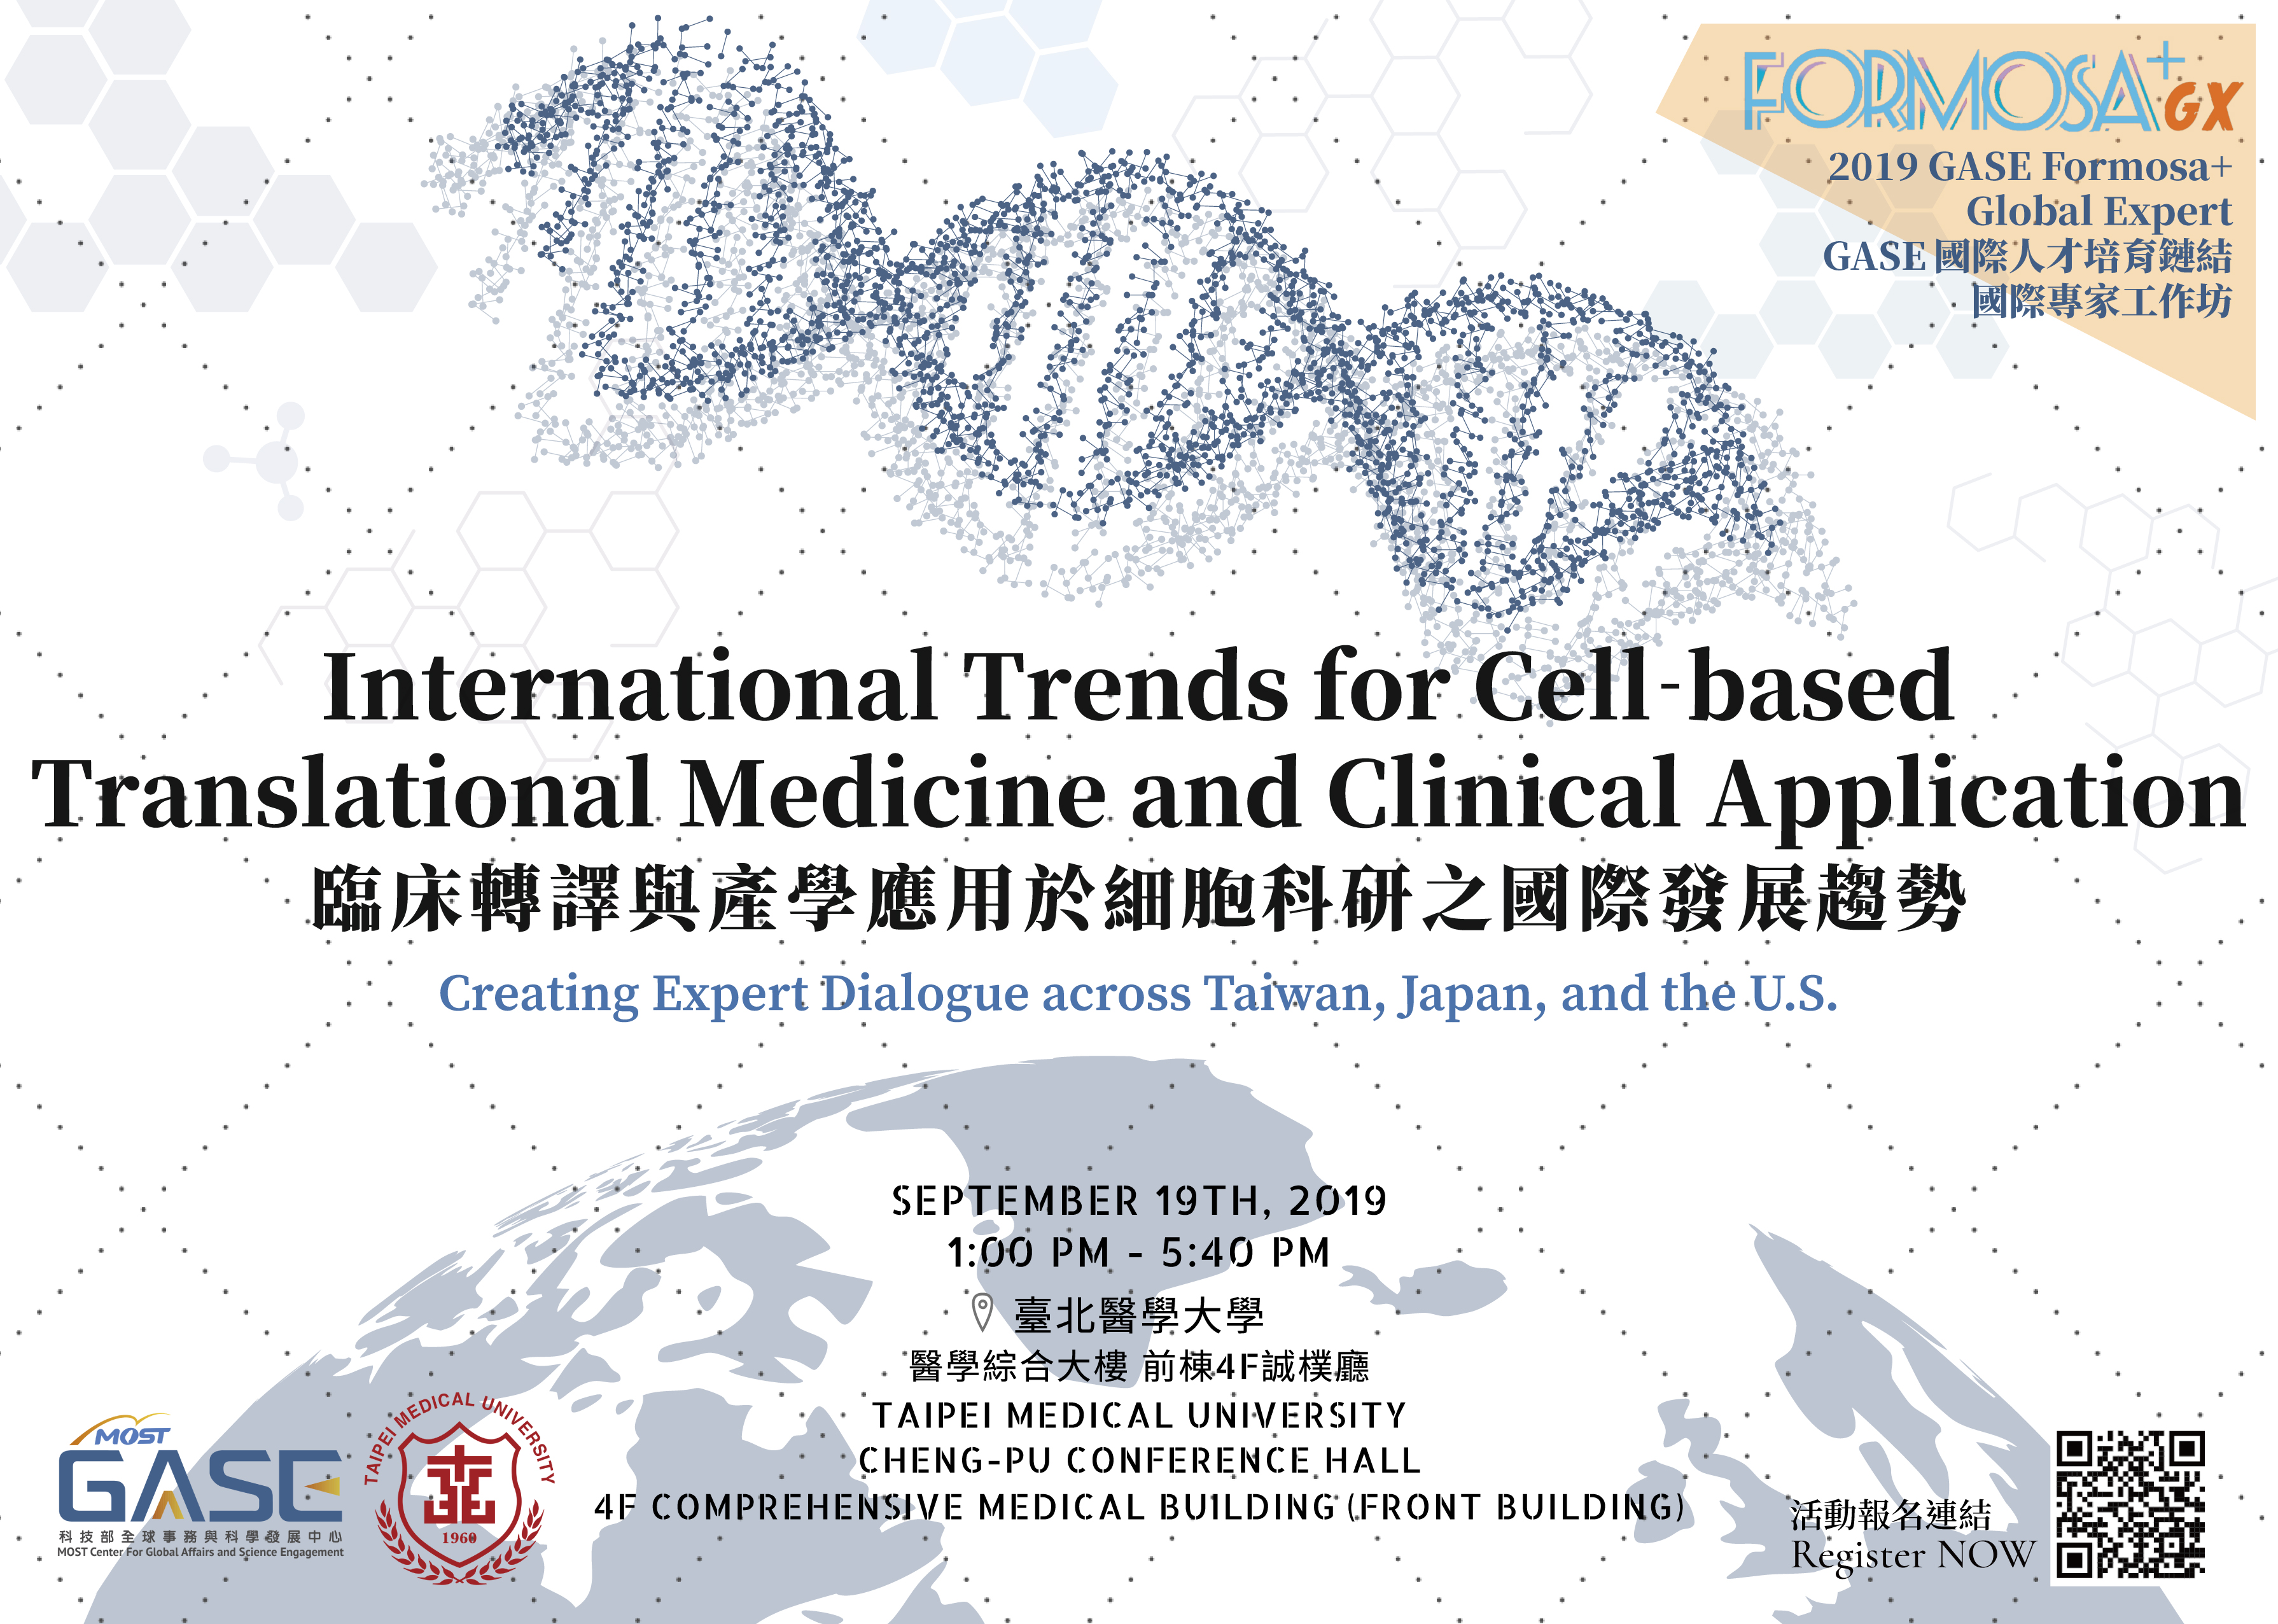 2019 GASE Formosa+ Global Expert-International trends for Cell-based Translational Medicine and Clinical Application